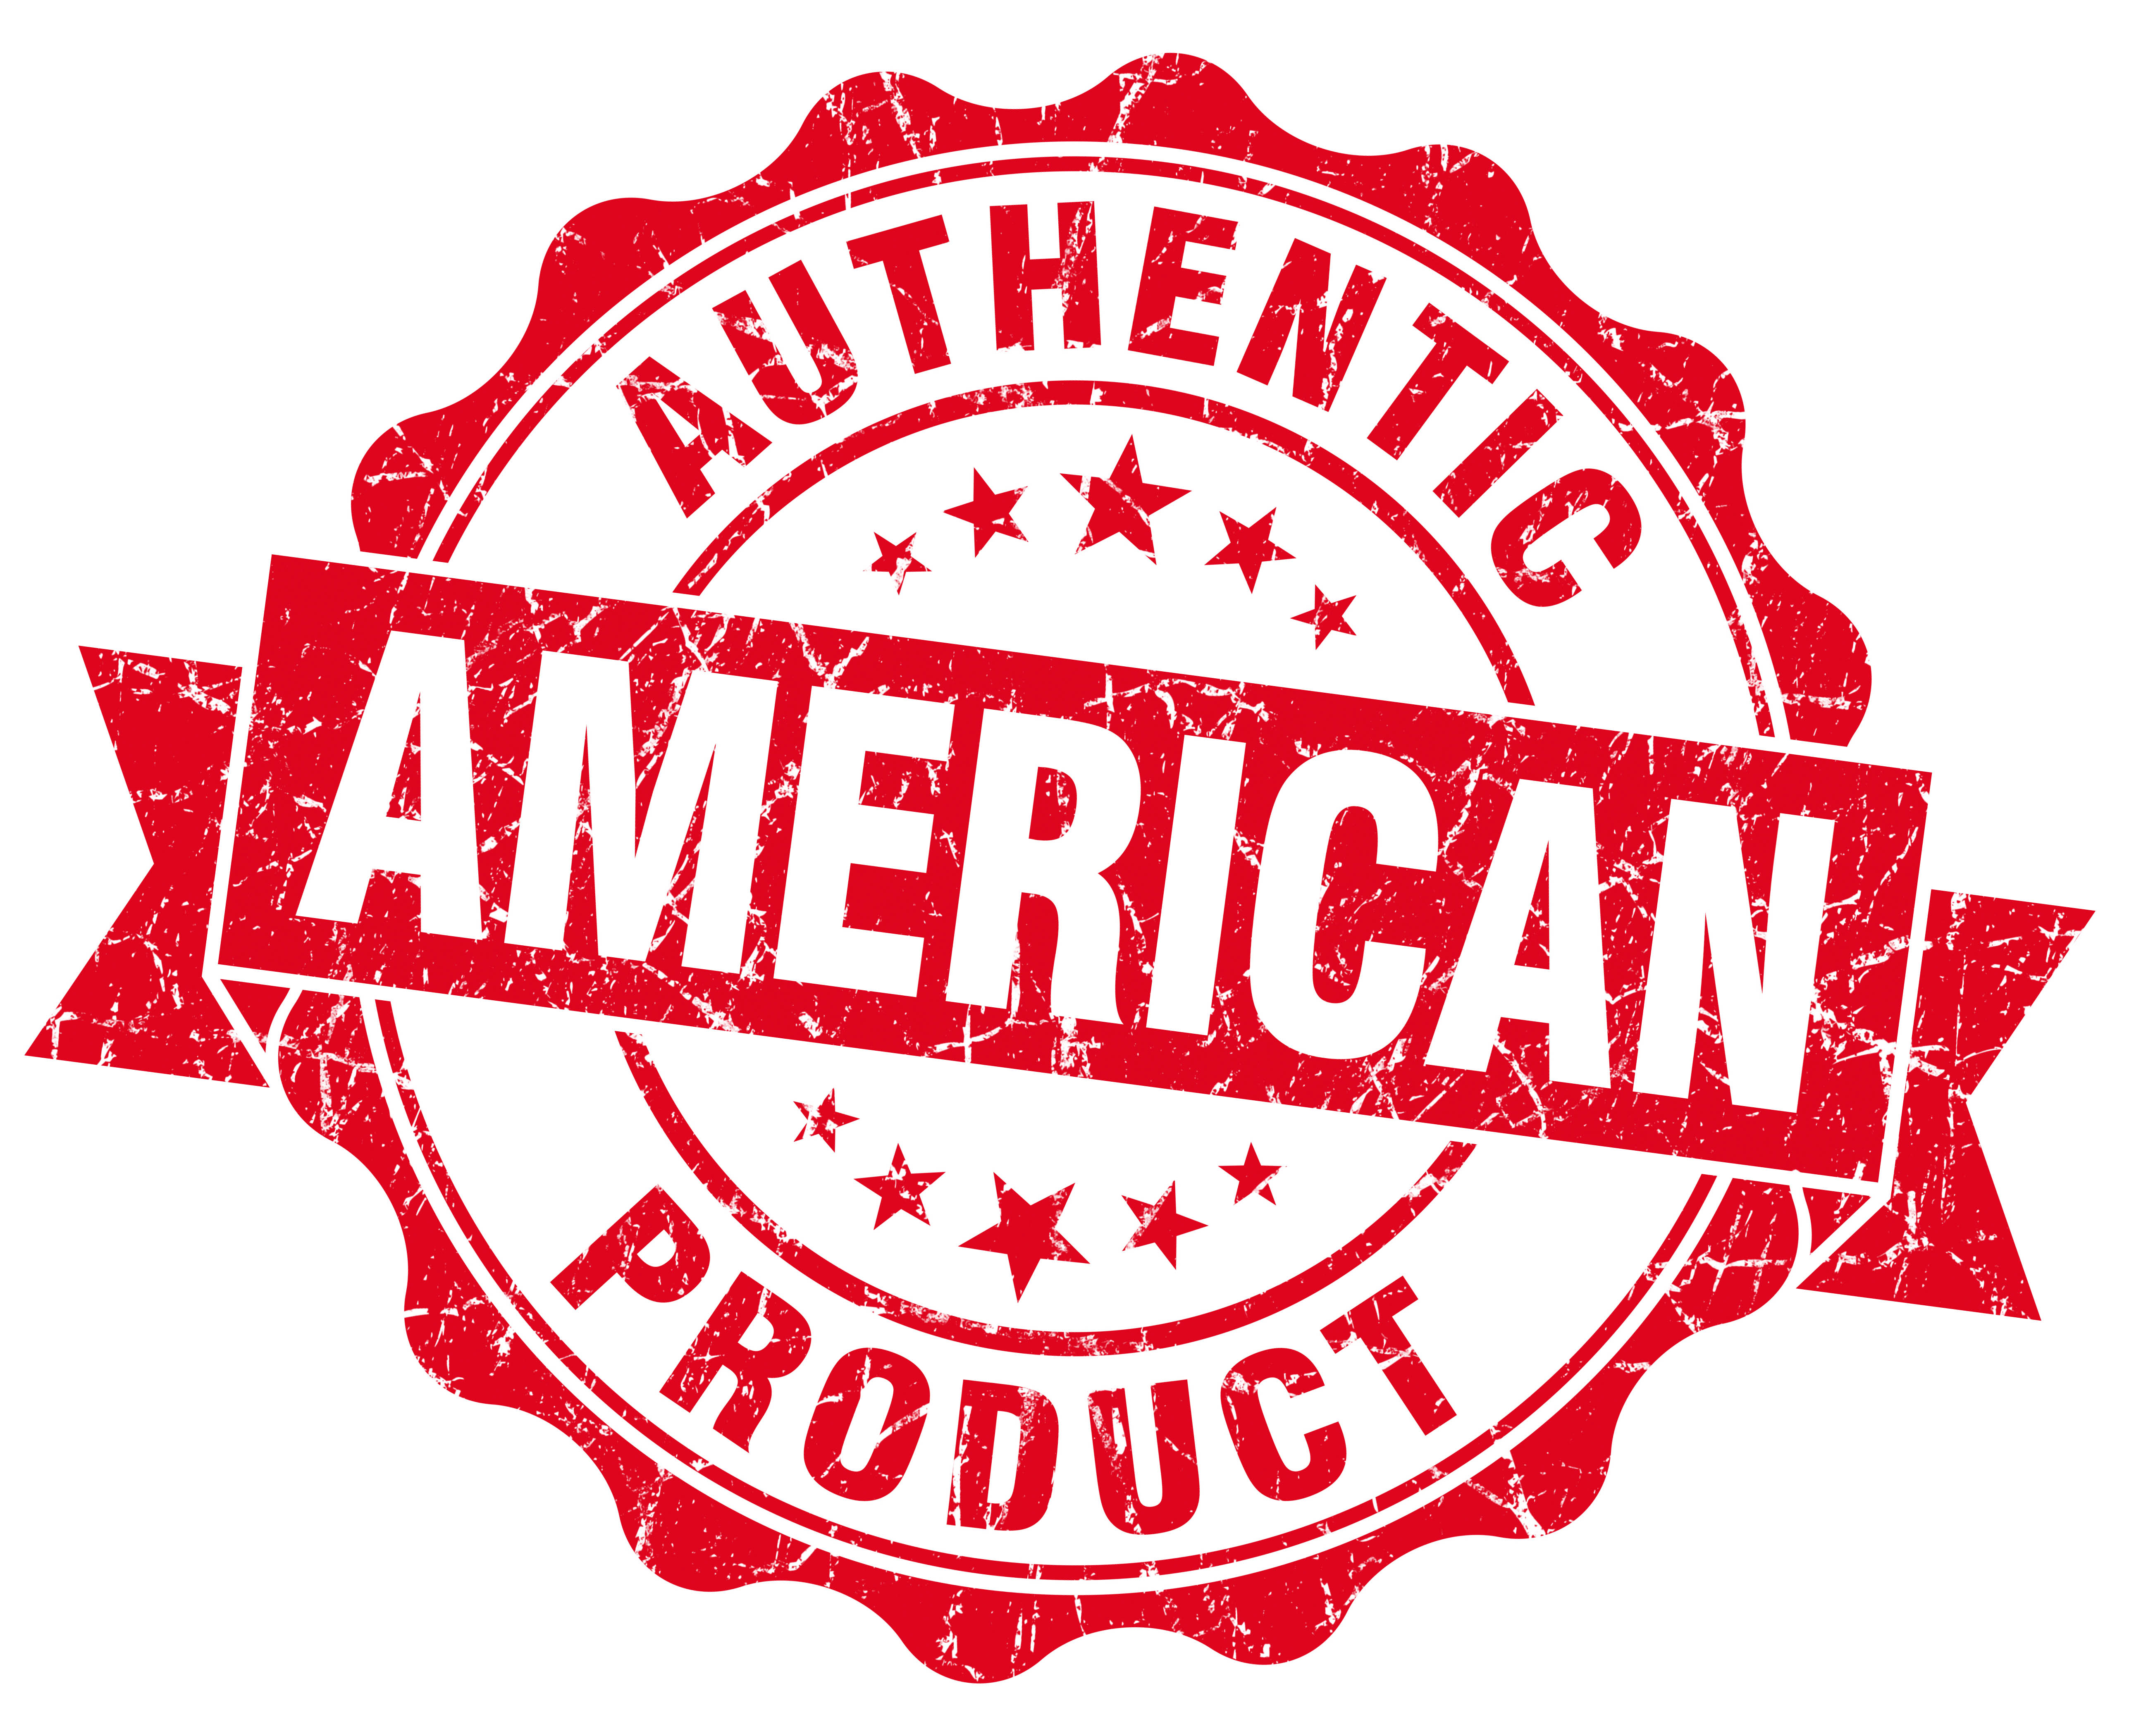 Be sure you are buying an Authentic American Made Product!